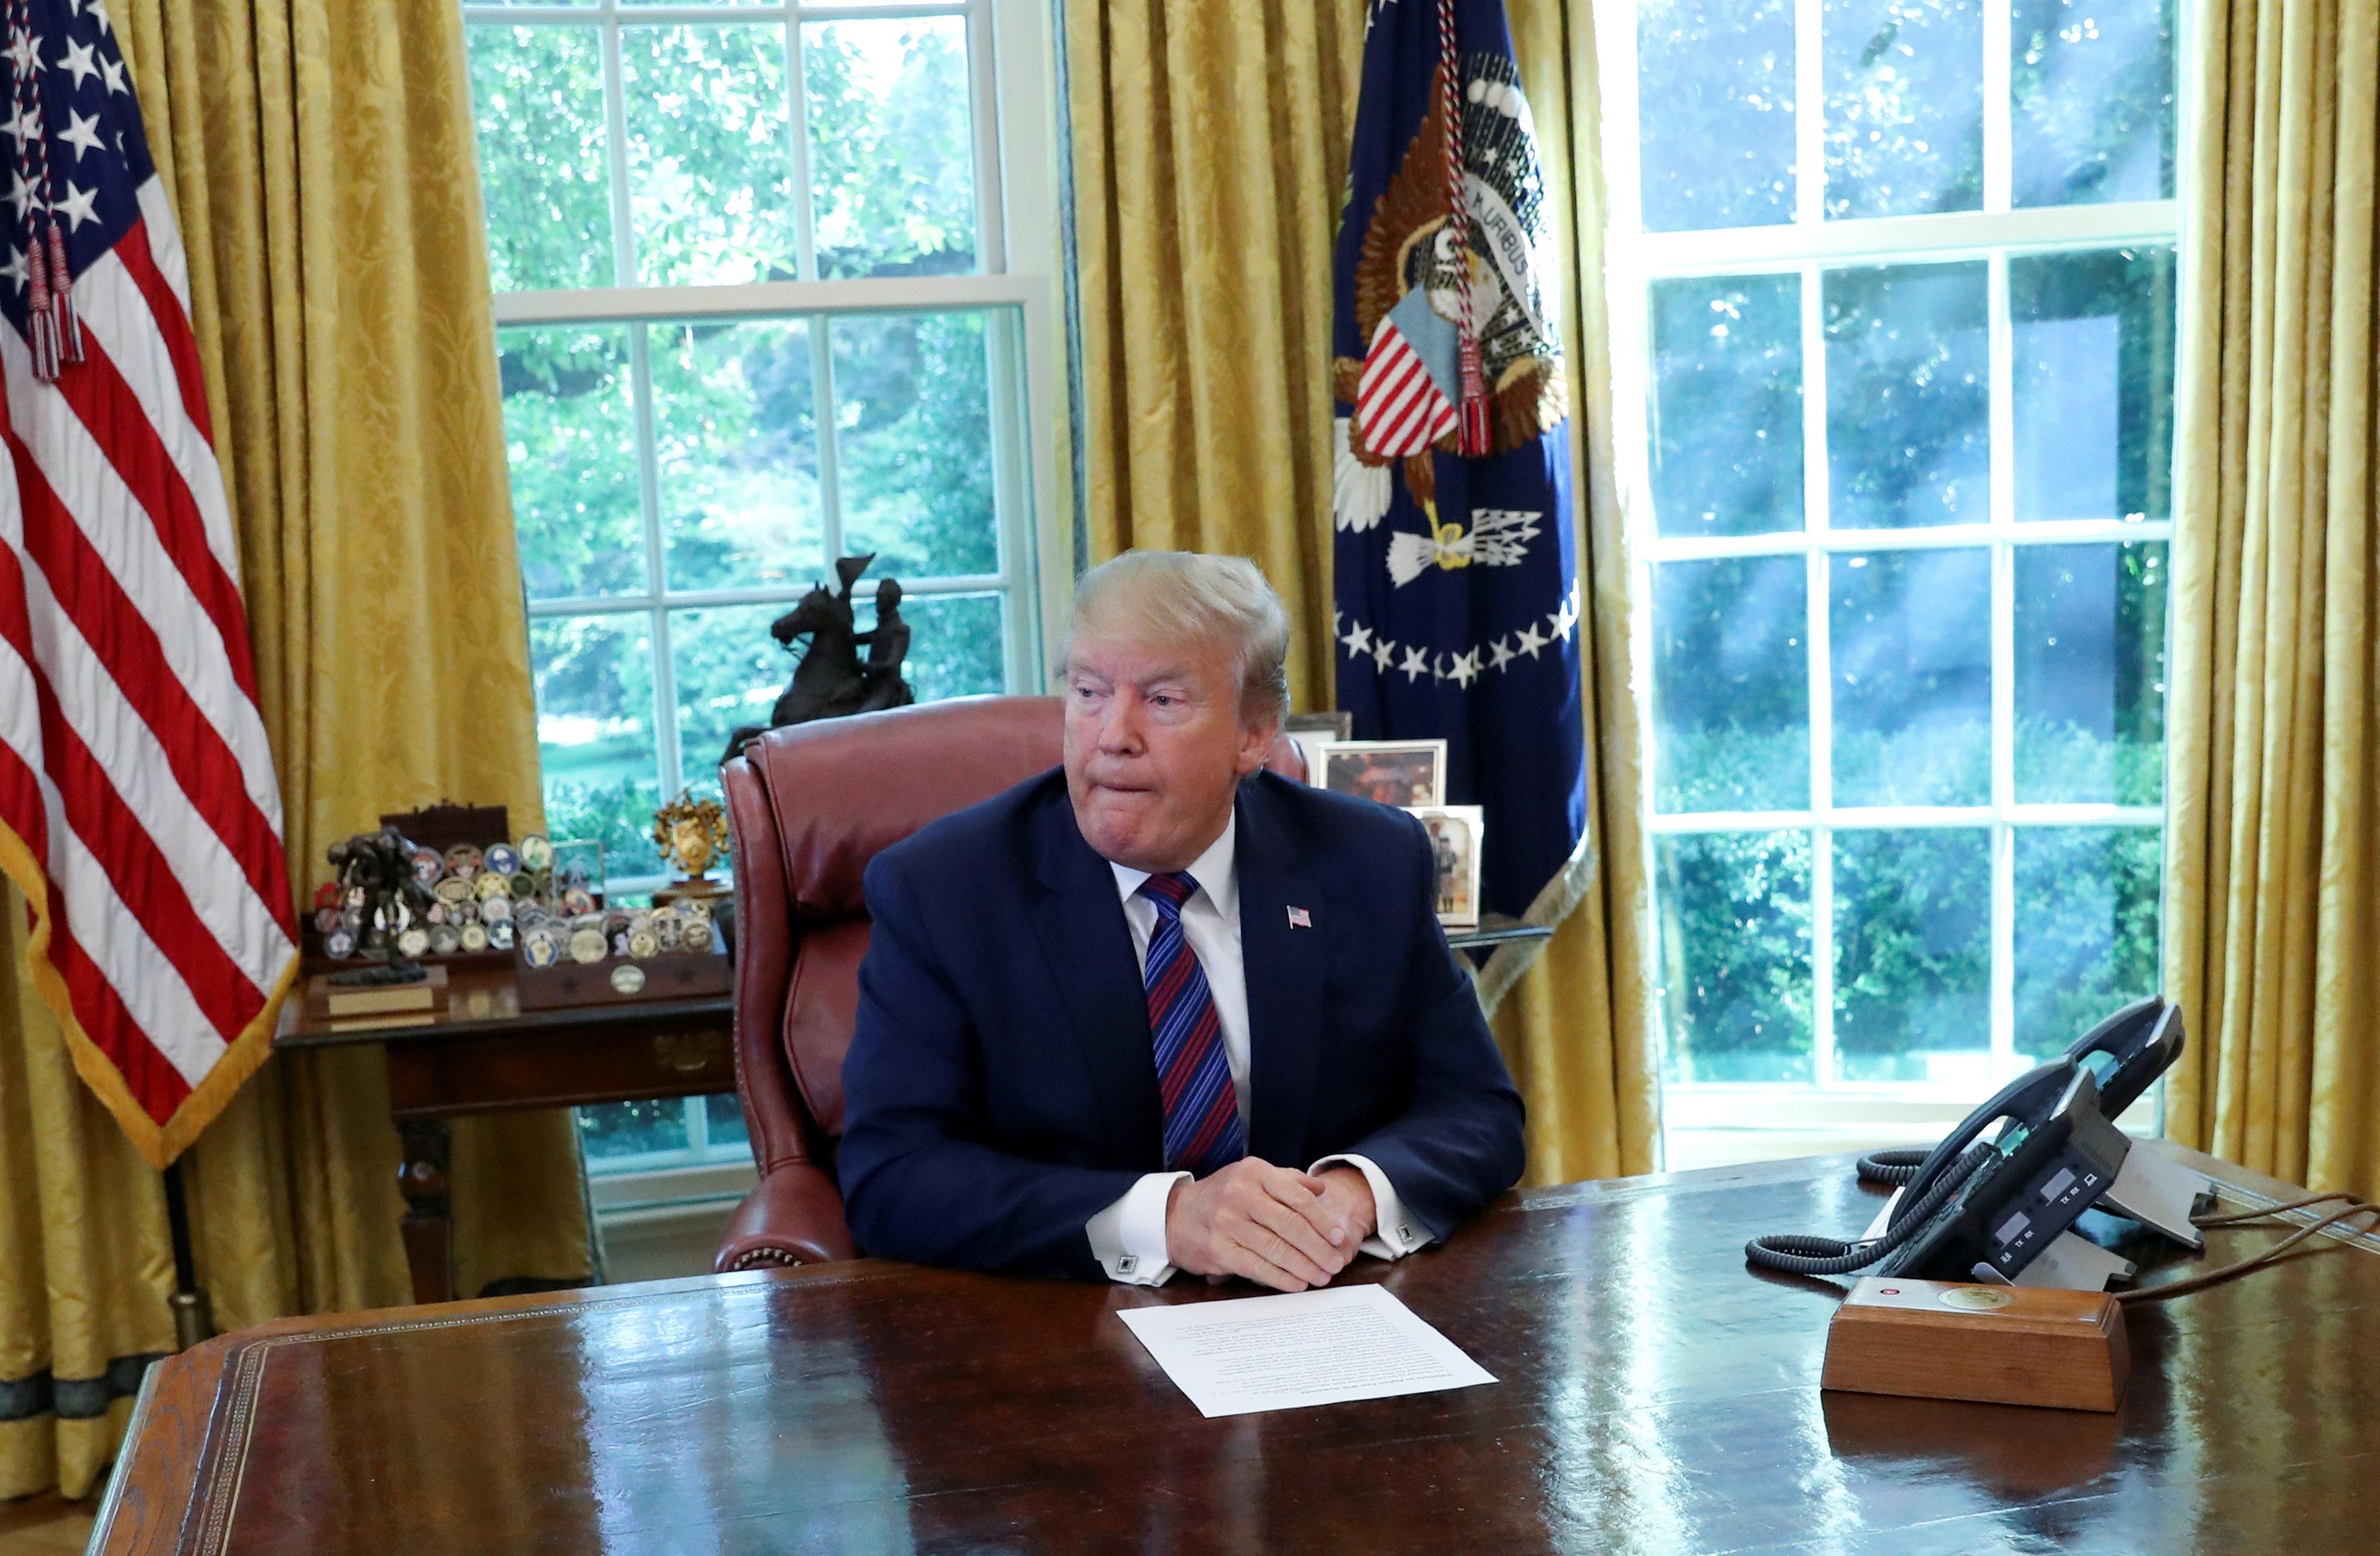 FILE PHOTO: U.S. President Donald Trump speaks in the Oval Office of the White House in Washington, U.S., July 26, 2019. REUTERS/Leah Millis/File Photo